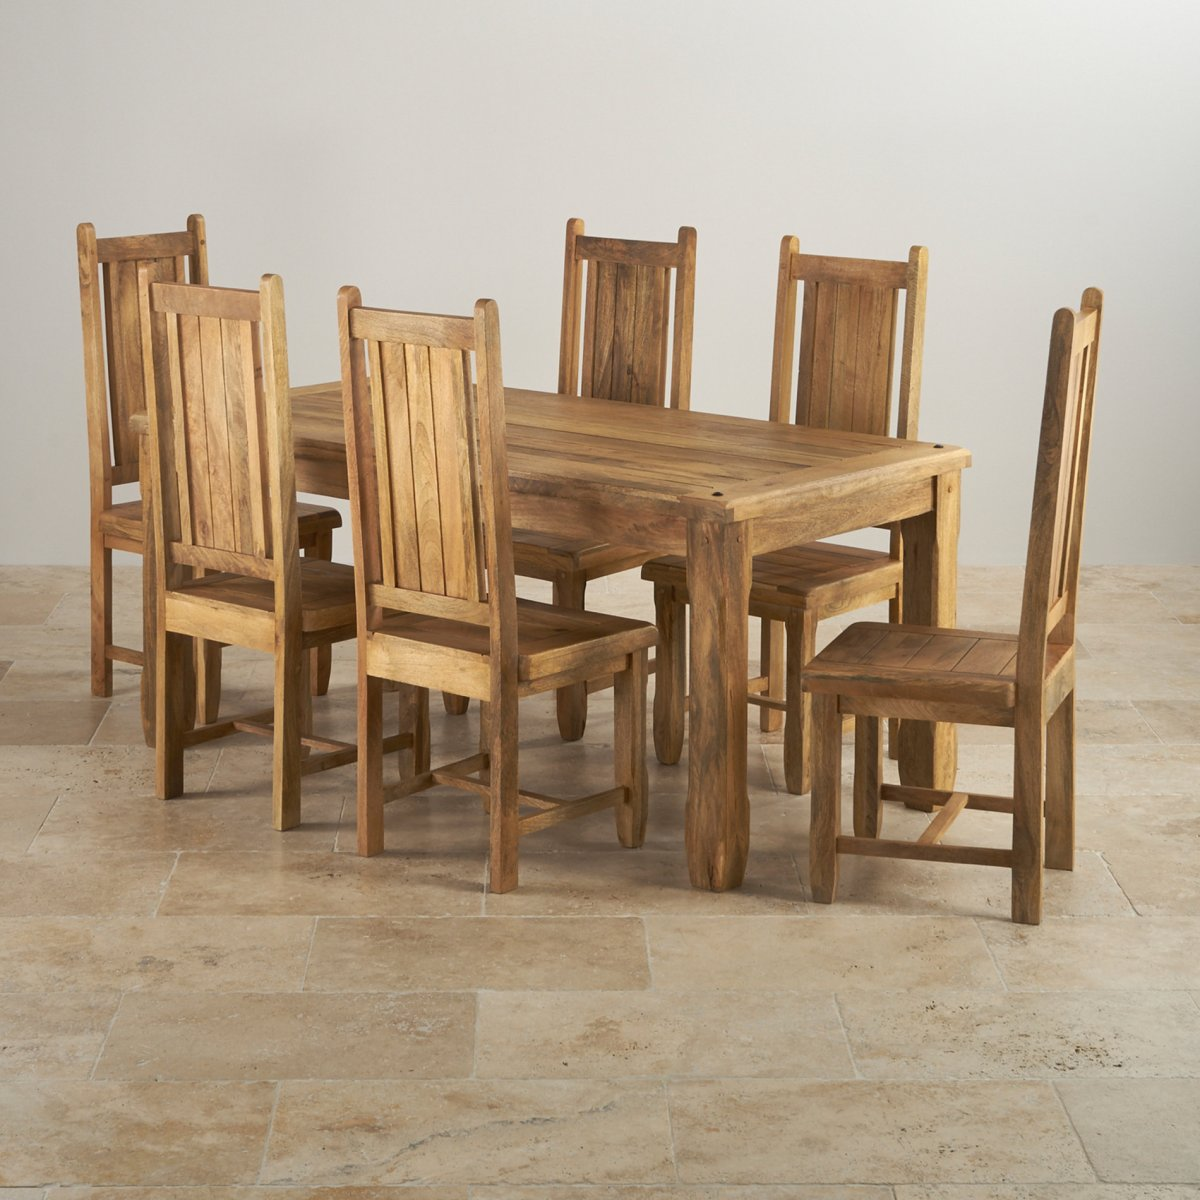 Baku Light Dining Table in Natural Mango 6 Mango Chairs : baku light natural solid mango dining set 5ft 6 table with 6 wooden chairs 5742cd01ca64fb7db7f9a95fea08d4ec1a543c51d6949 from www.oakfurnitureland.co.uk size 1200 x 1200 jpeg 185kB